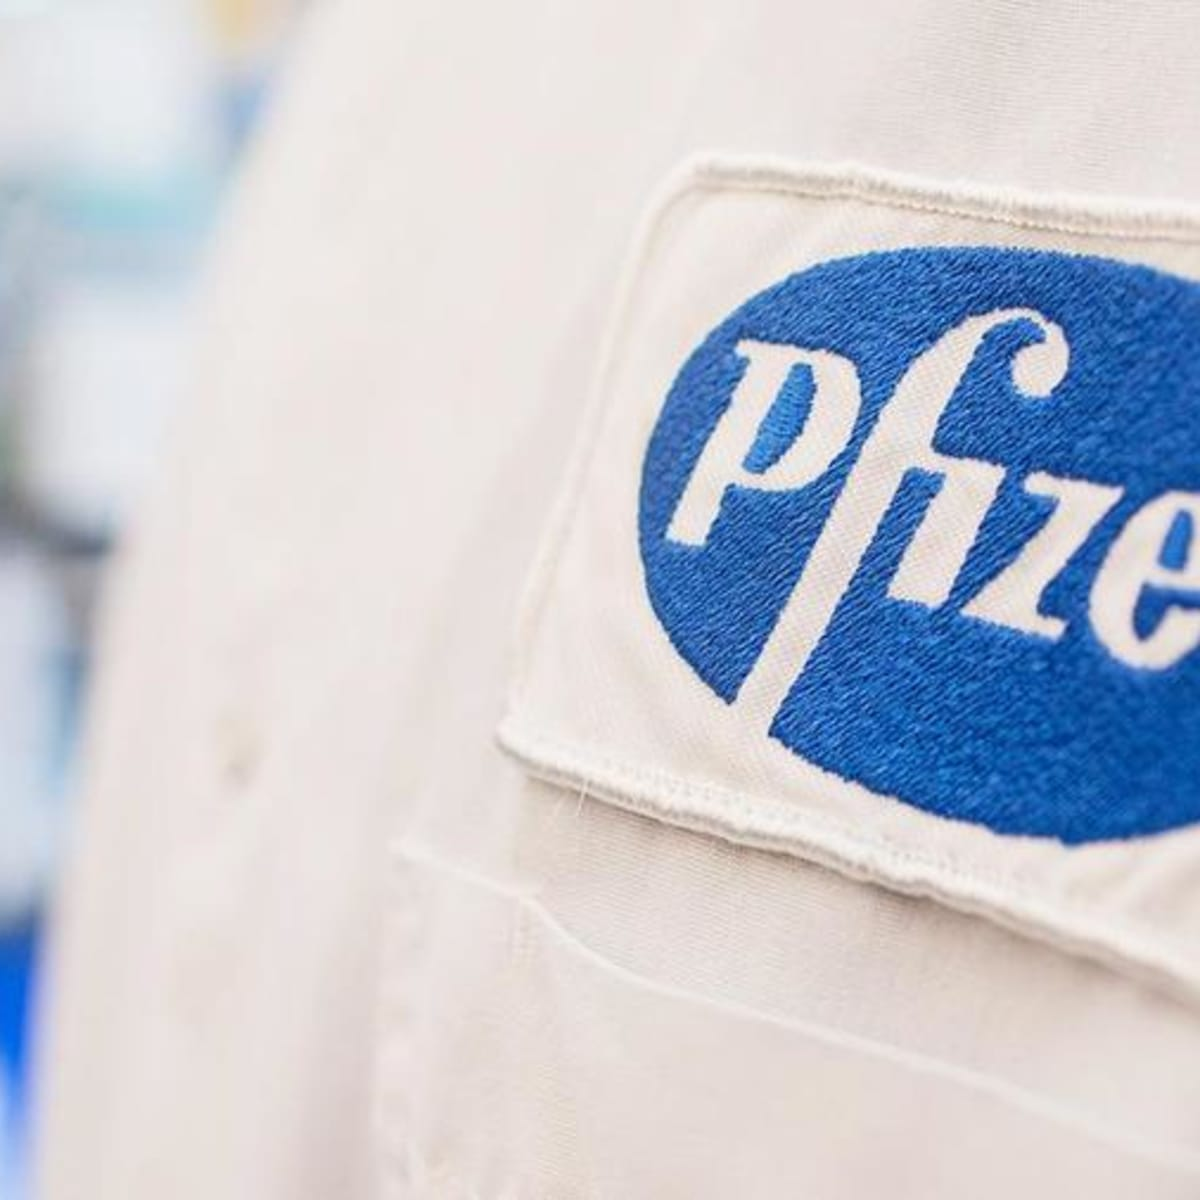 Biontech Side Effects Won T Stop Covid Vaccine Trial With Pfizer Thestreet